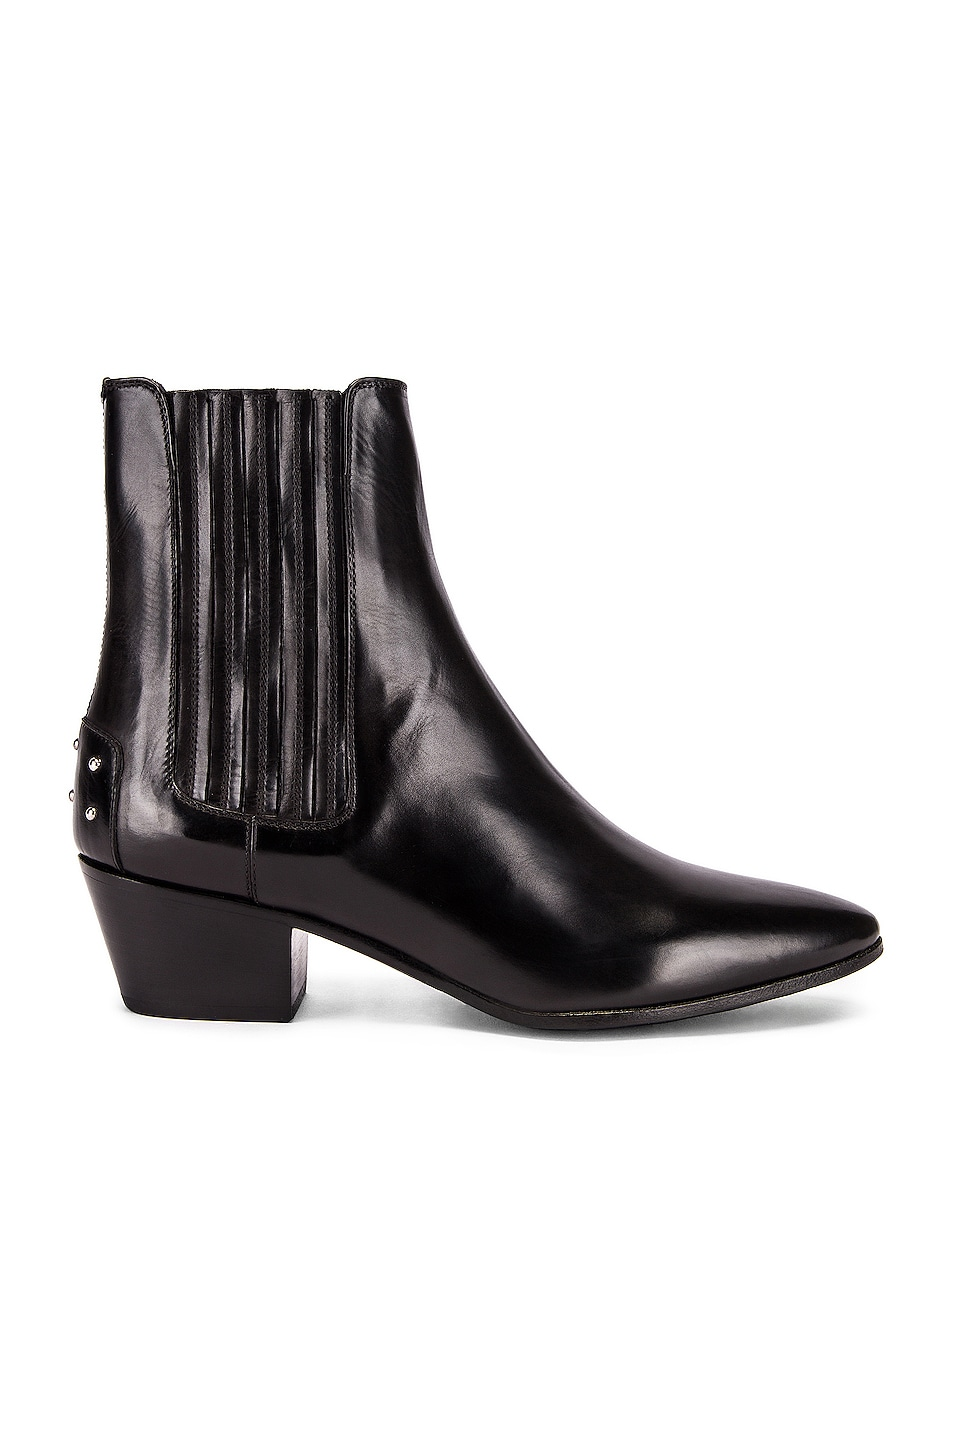 Image 1 of Saint Laurent West Leather Chelsea Boots in Black